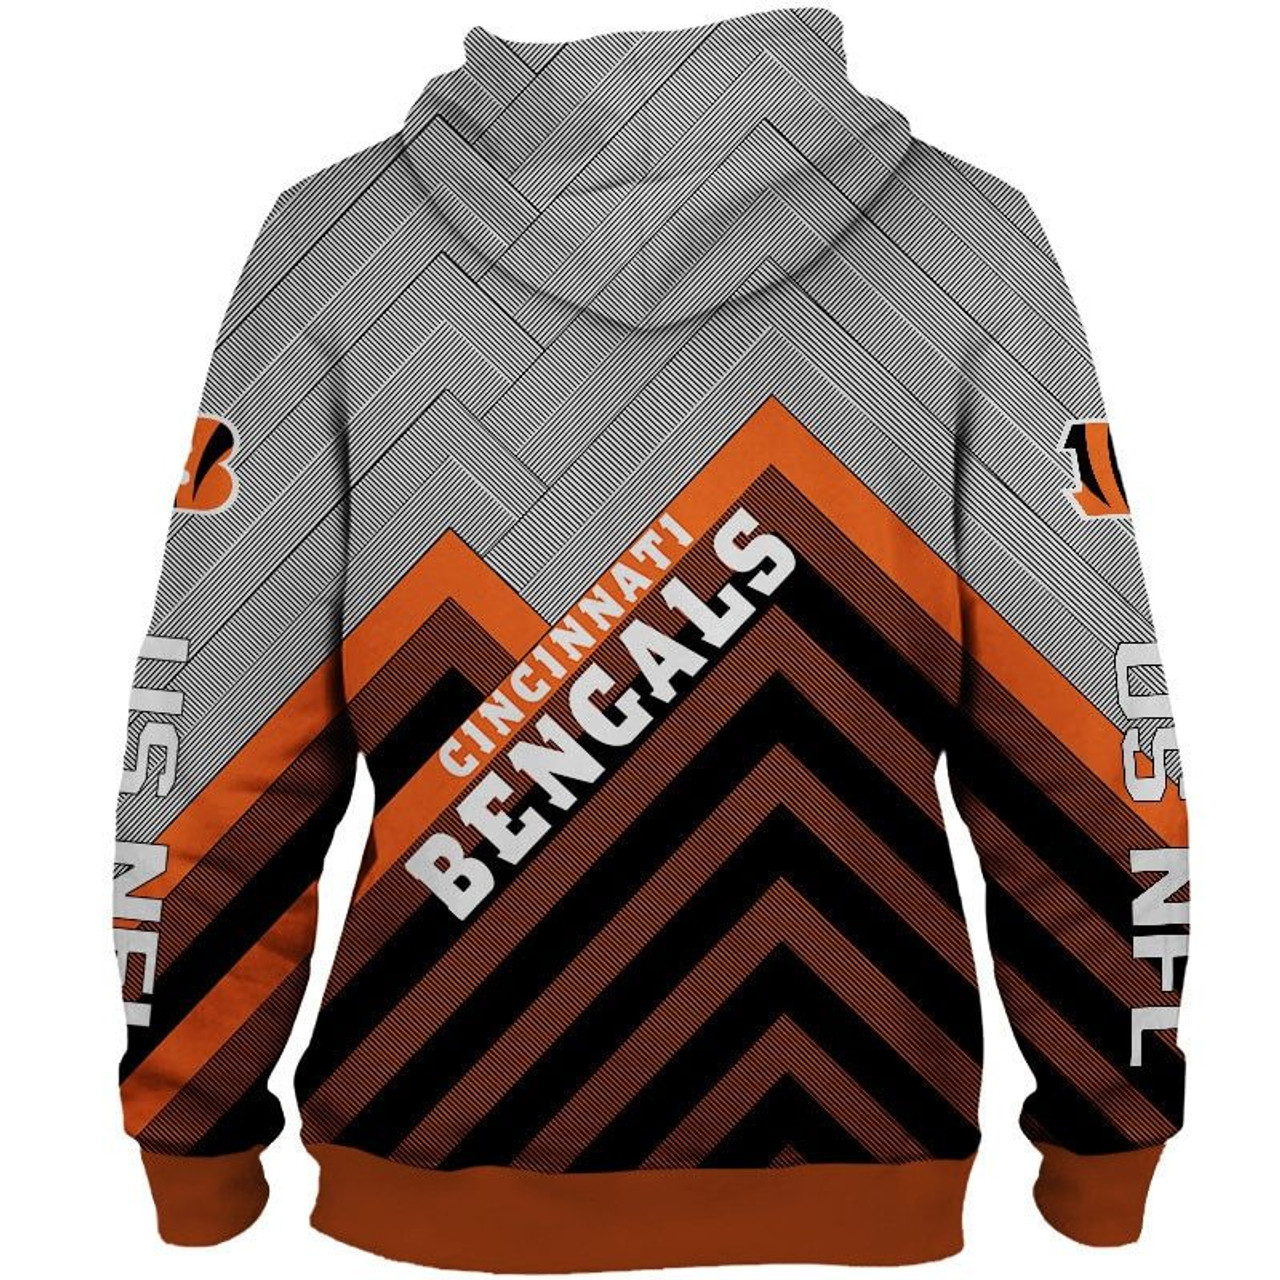 **(NEW-OFFICIAL-N.F.L.CINCINNATI-BENGALS-ZIPPERED-HOODIES/3D-CUSTOM-BENGALS-LOGOS & OFFICIAL-BENGALS-TEAM-COLORS/NICE-3D-DETAILED-GRAPHIC-PRINTED-DOUBLE-SIDED/ALL-OVER-ENTIRE-HOODIE-PRINTED-DESIGN/TRENDY-WARM-PREMIUM-BENGALS-ZIPPERED-HOODIES)**